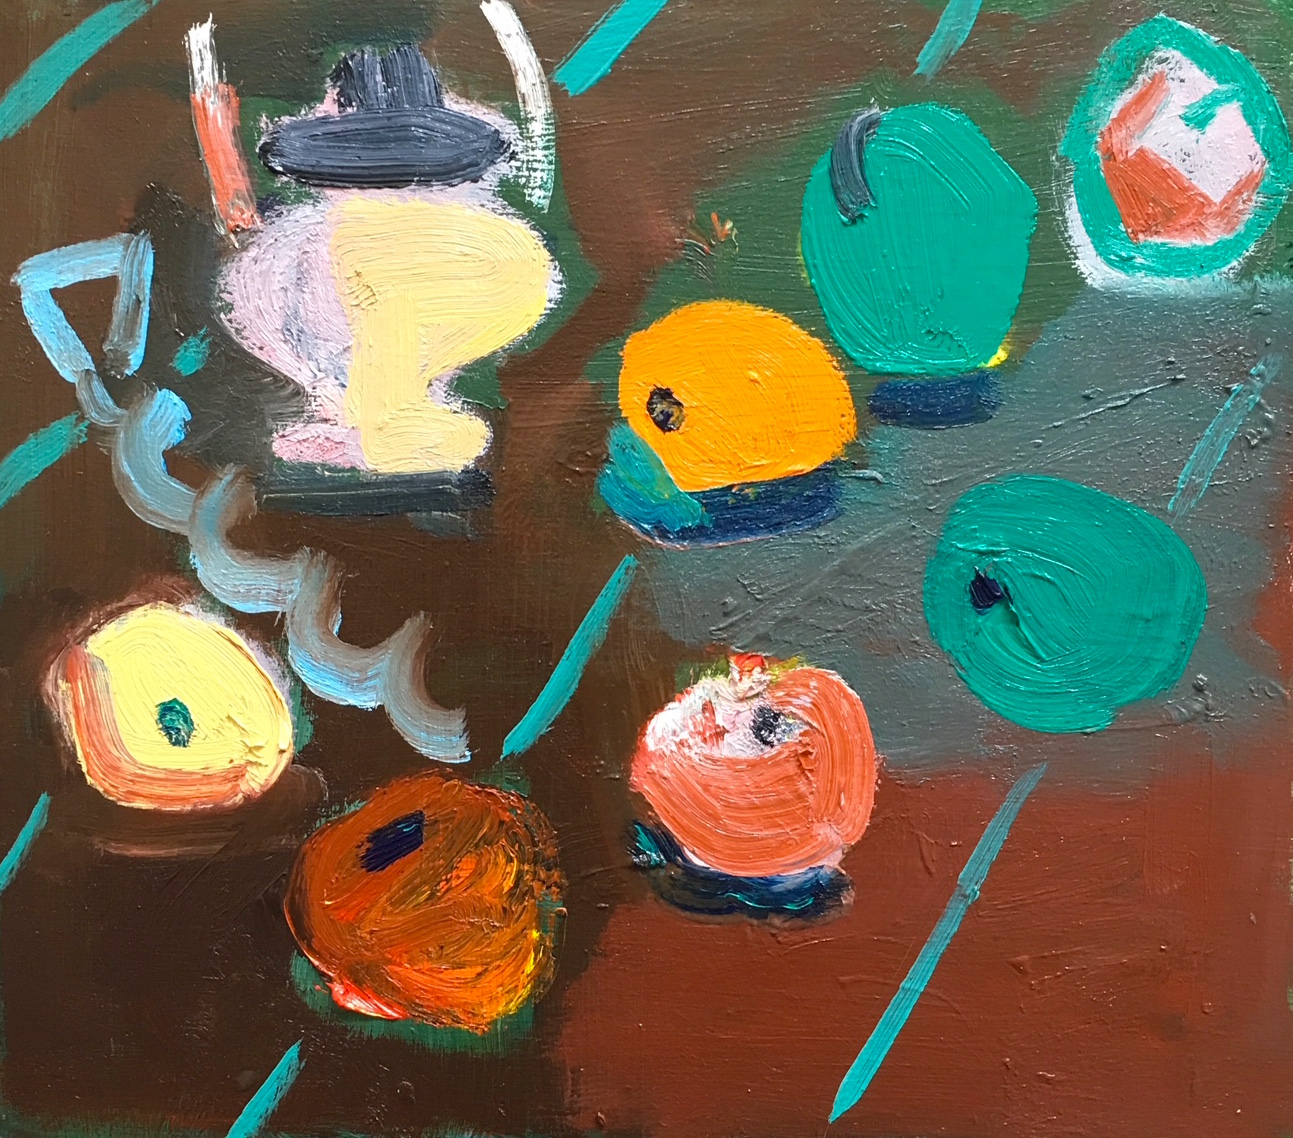 Title: Still Life I  Medium : Oil on board  Size: 30 x 33 cm  Price: £825